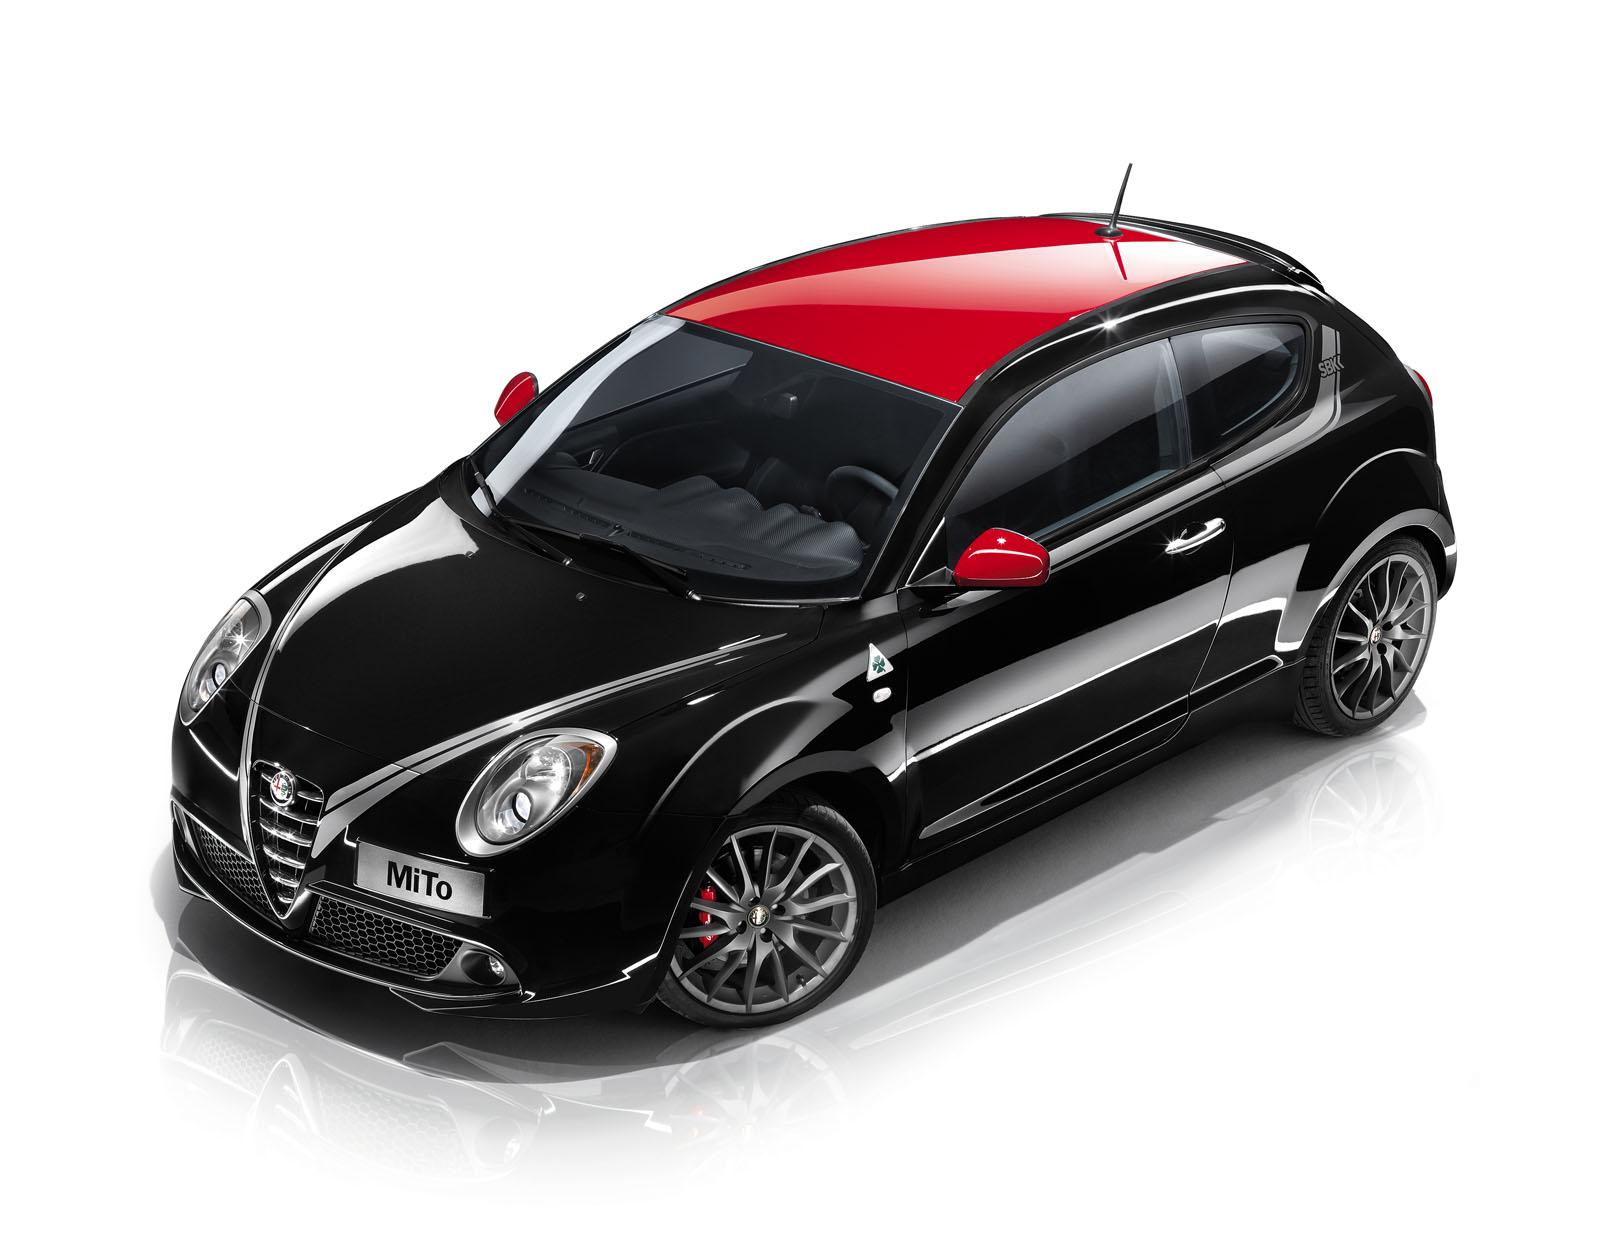 2013 Alfa Romeo MiTo SBK Limited Edition Alfa Romeo plans to launch 2013 MiTo SBK Limited Edition at Paris motor show